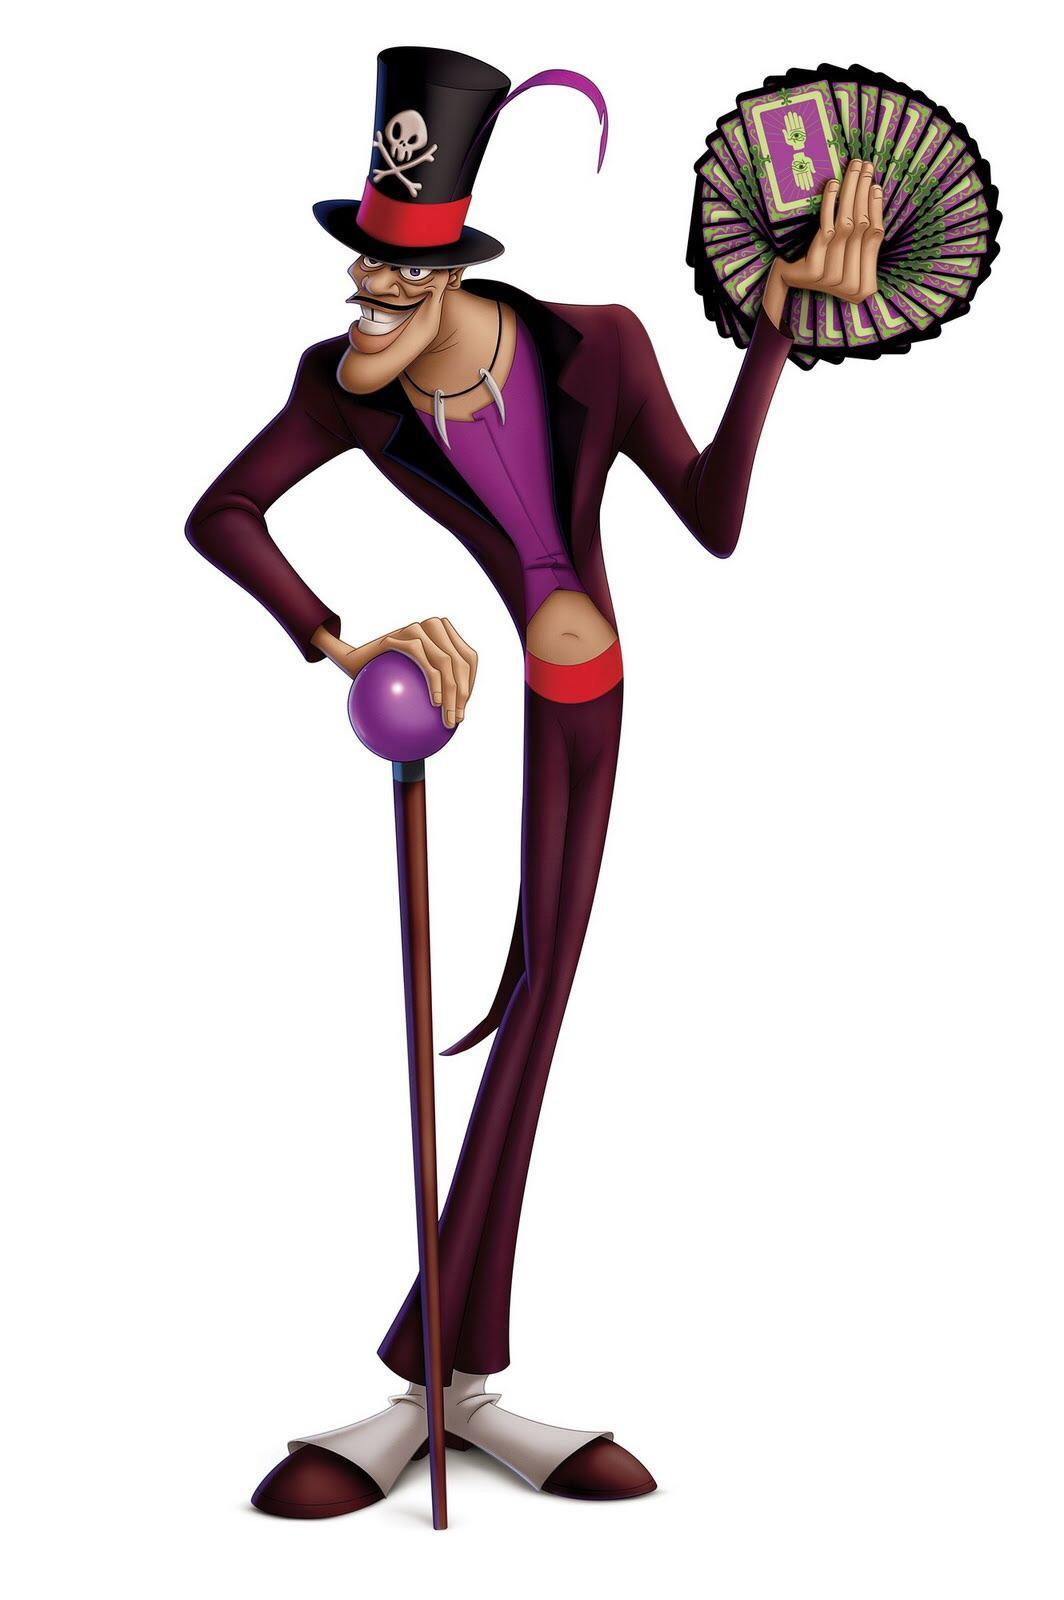 Dr Facilier (The Princess and the Frog)